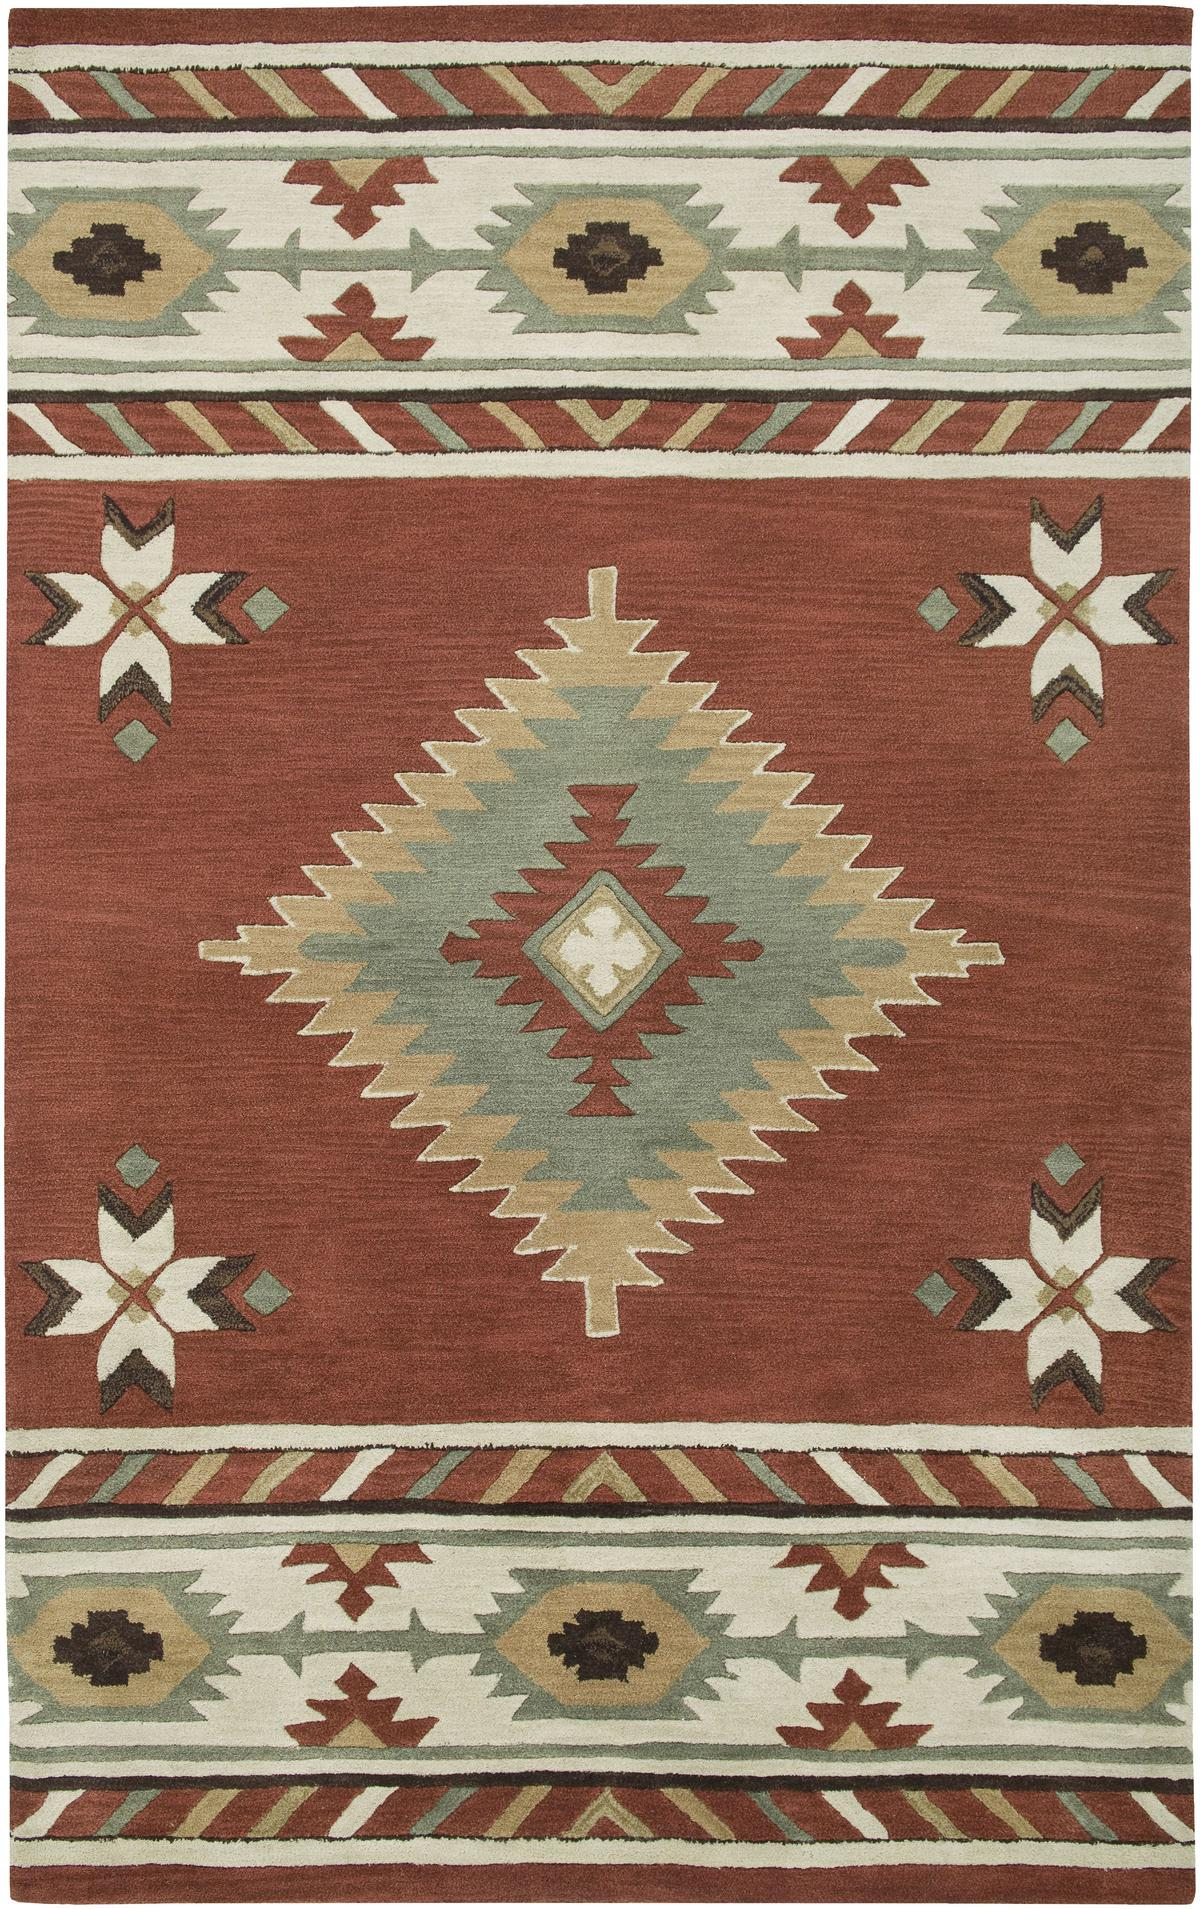 southwestern rugs rizzy rugs southwest su1822. tap to expand FKZQXZE